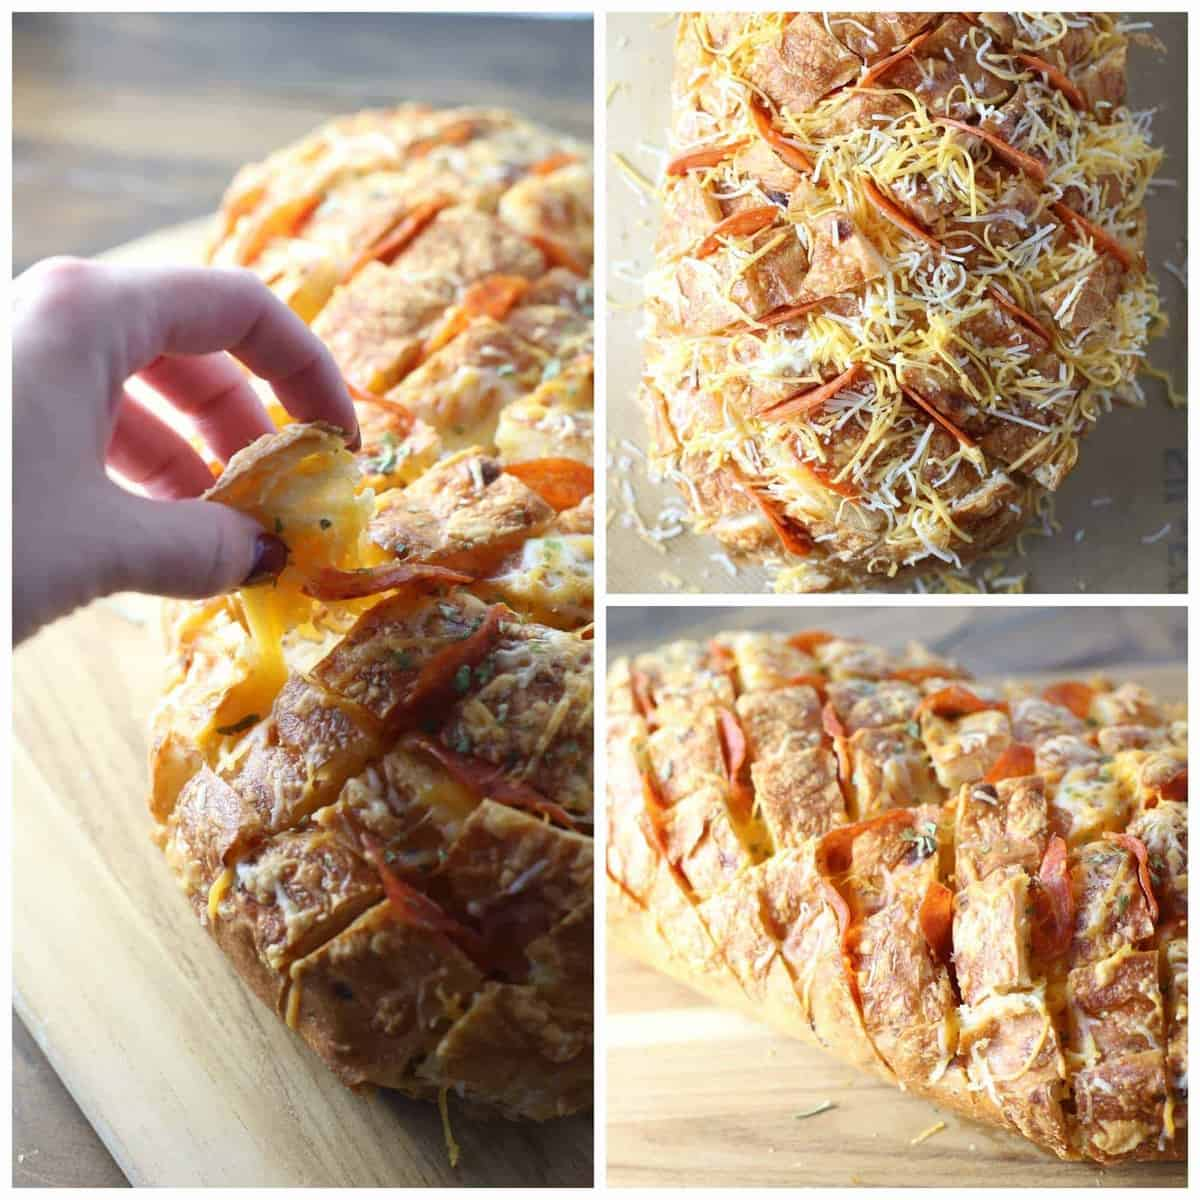 Pizza Pull Apart bread - great for a side dish or easy appetizer